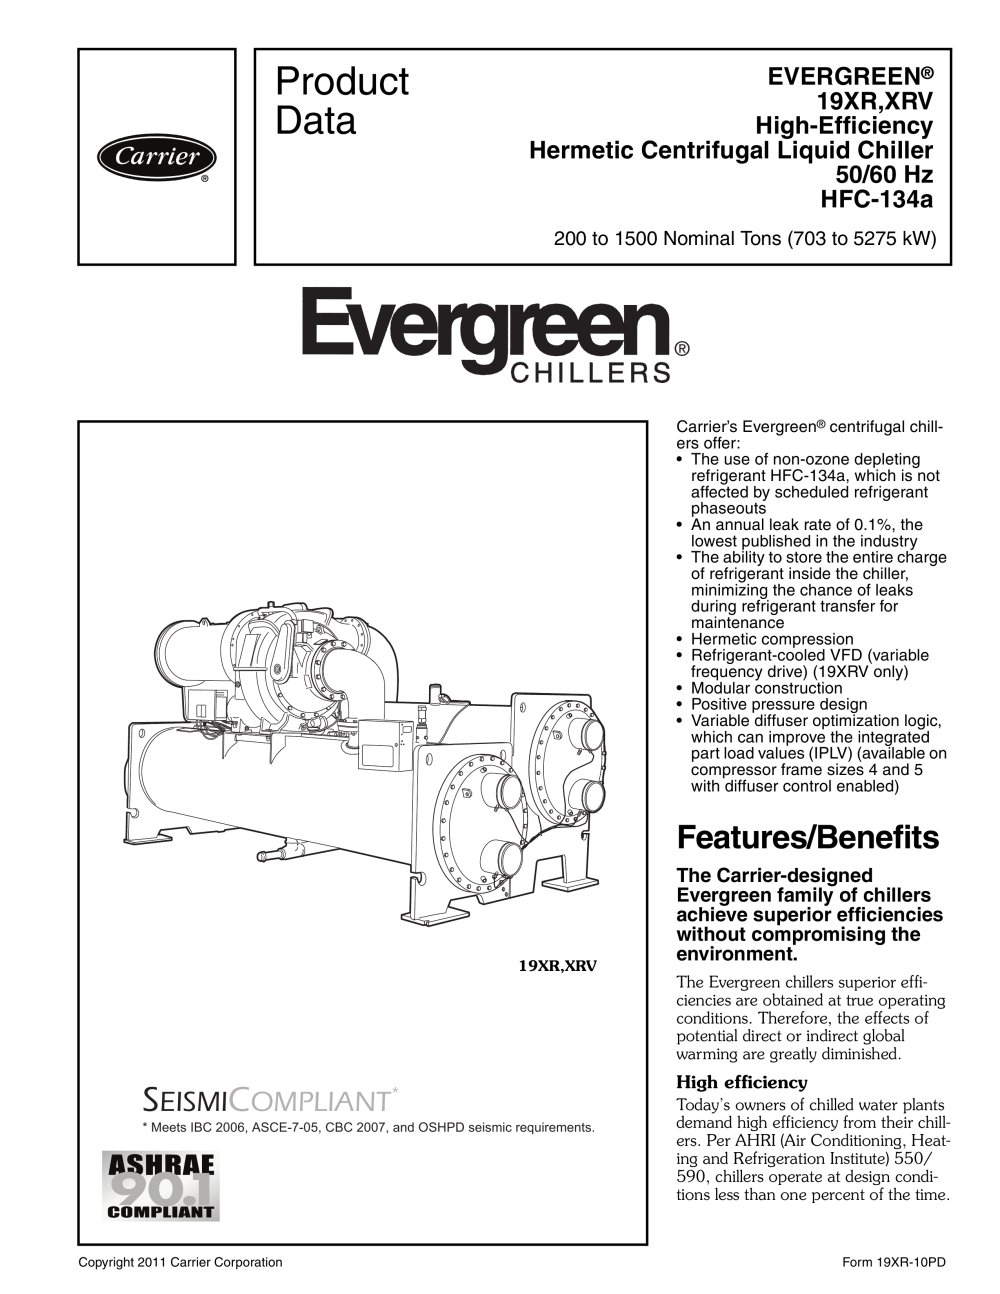 19XR EVERGREEN® - 1 / 56 Pages